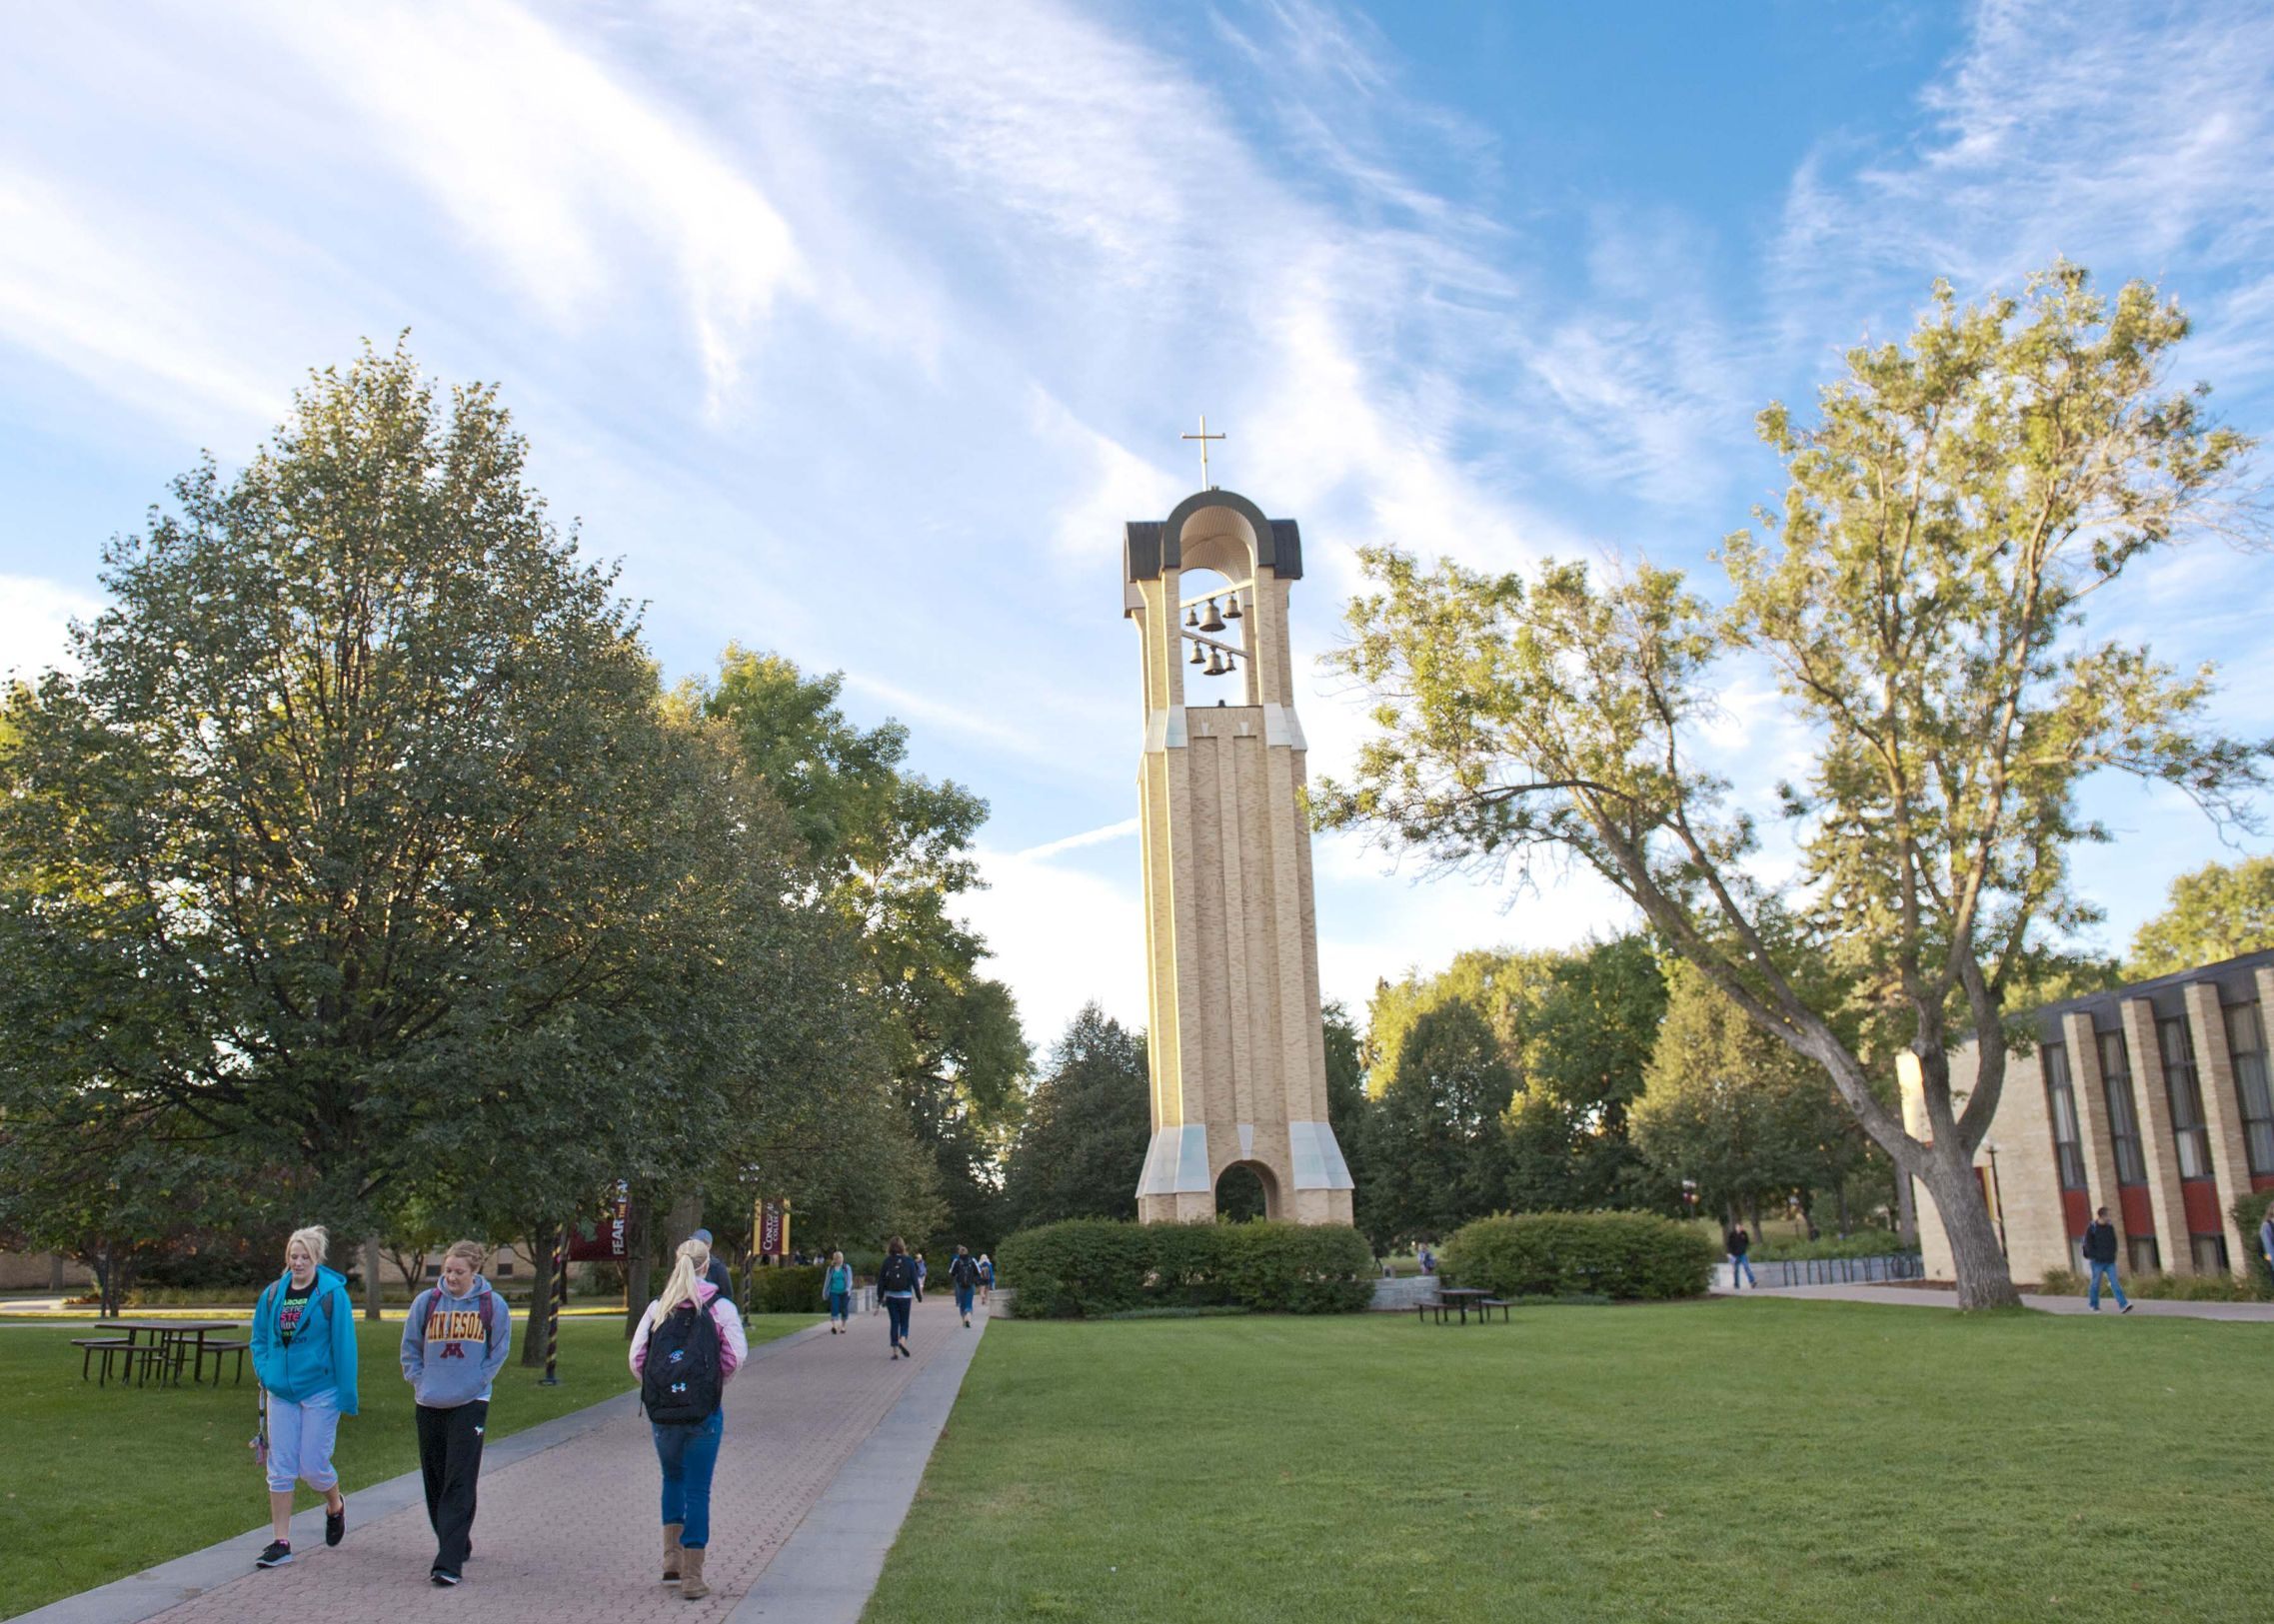 Pretty Shot Of Our Campanile Bell Tower At Concordia College In Moorhead Minn Cordmn Midwest Moorhead Minnesota